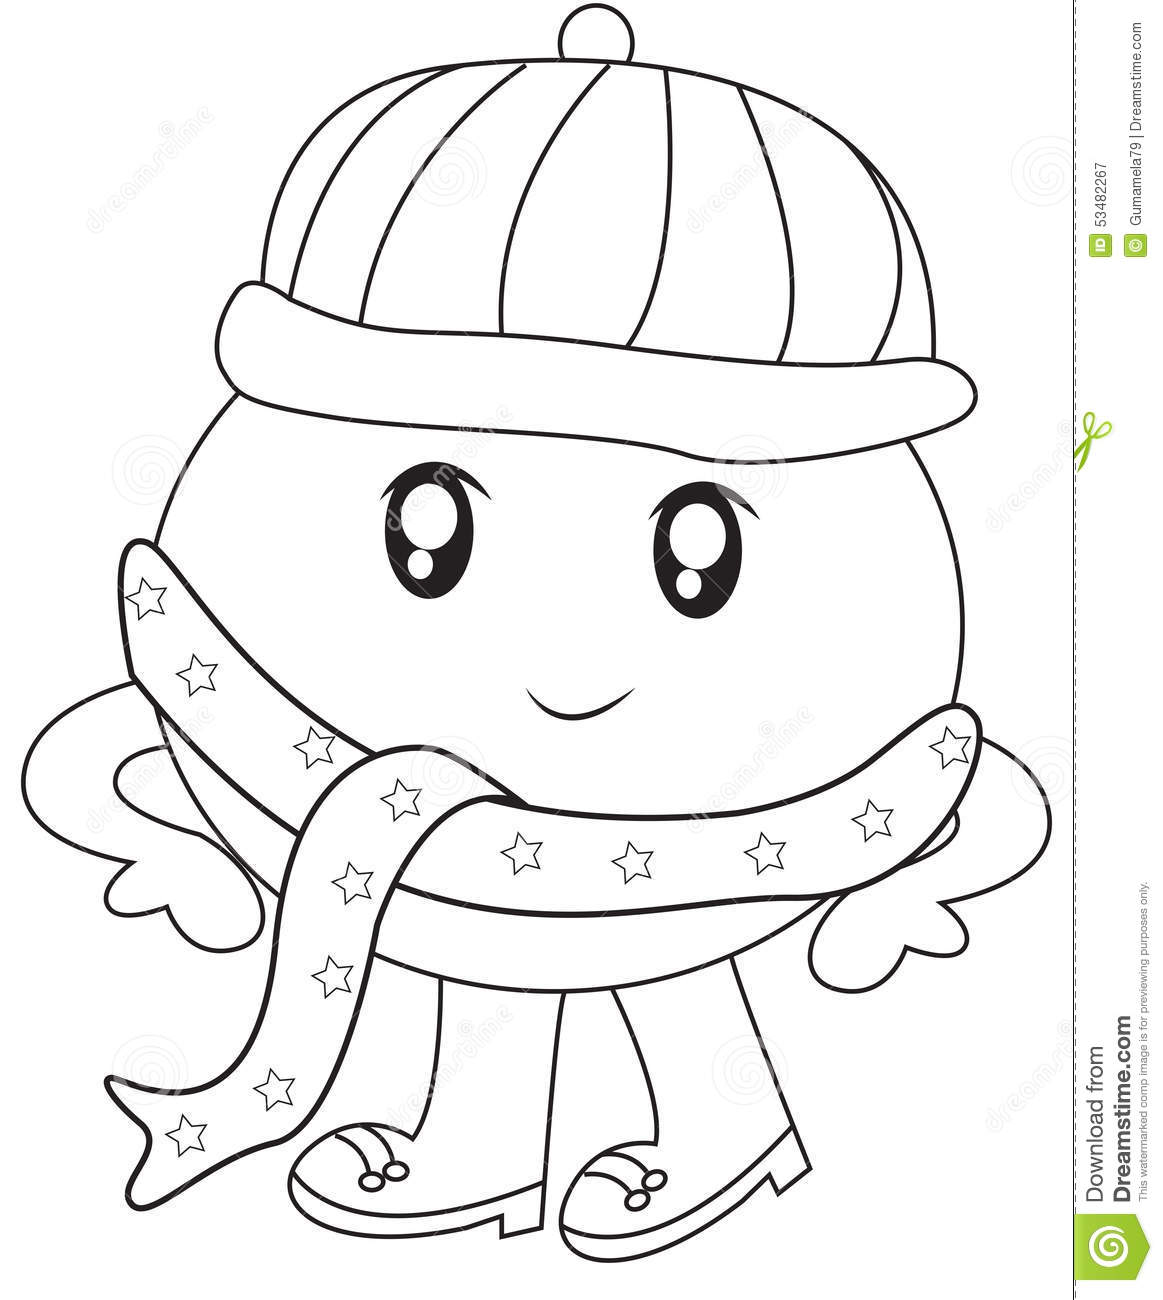 Humpy Dumpy With A Scarf Coloring Page Stock Illustration